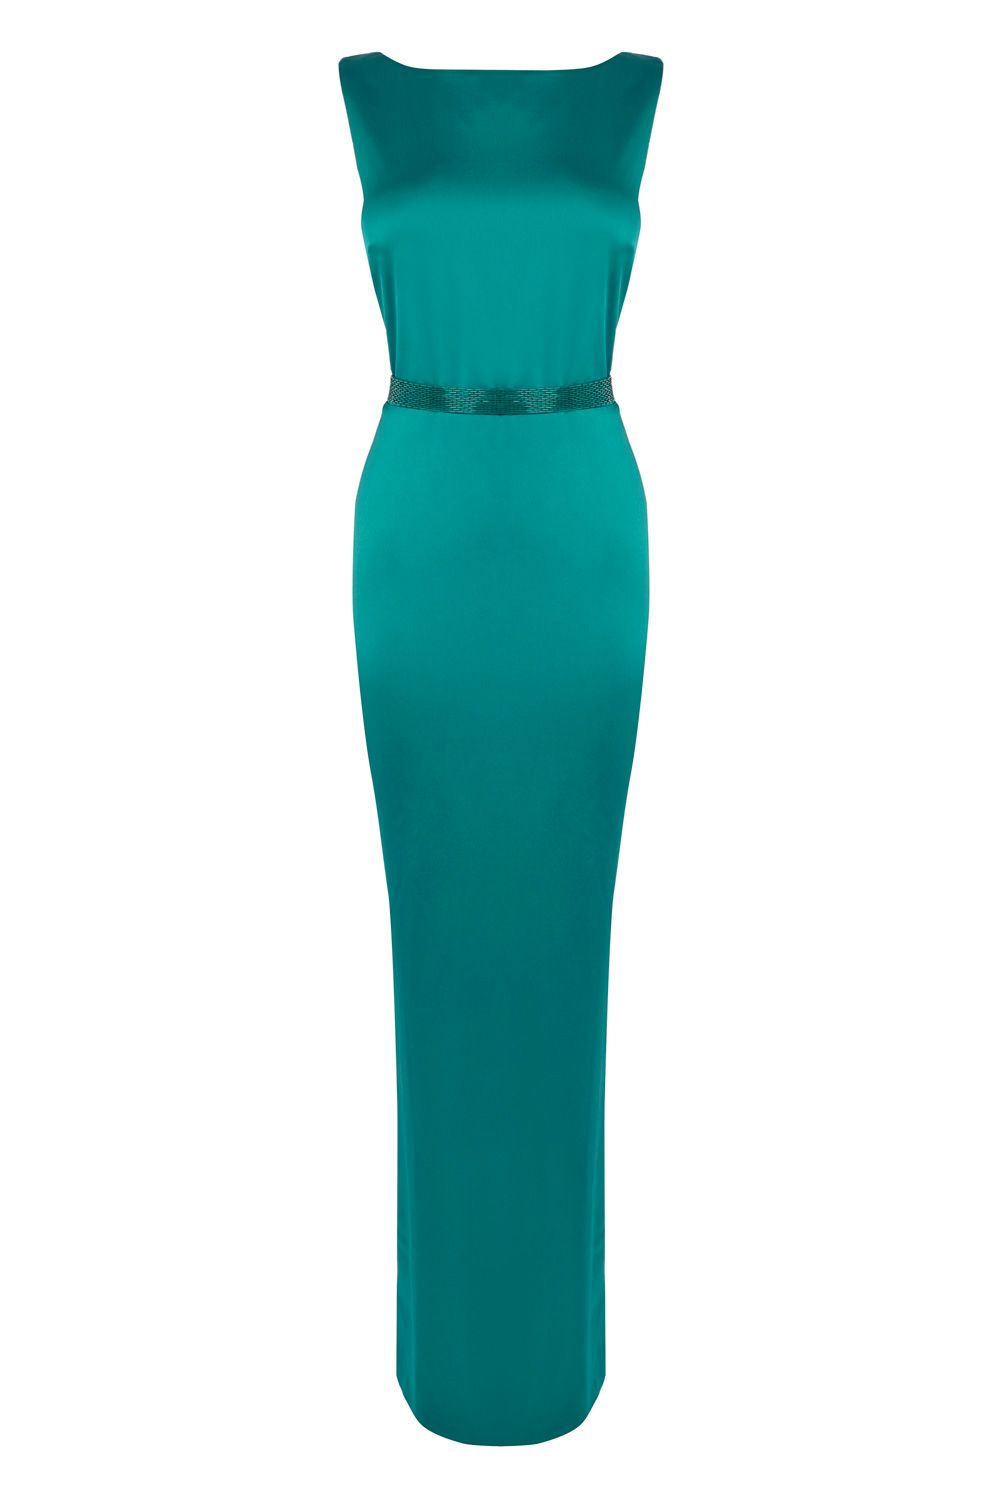 Christmas party dresses for women over 40 | Winter, Woman and Fashion